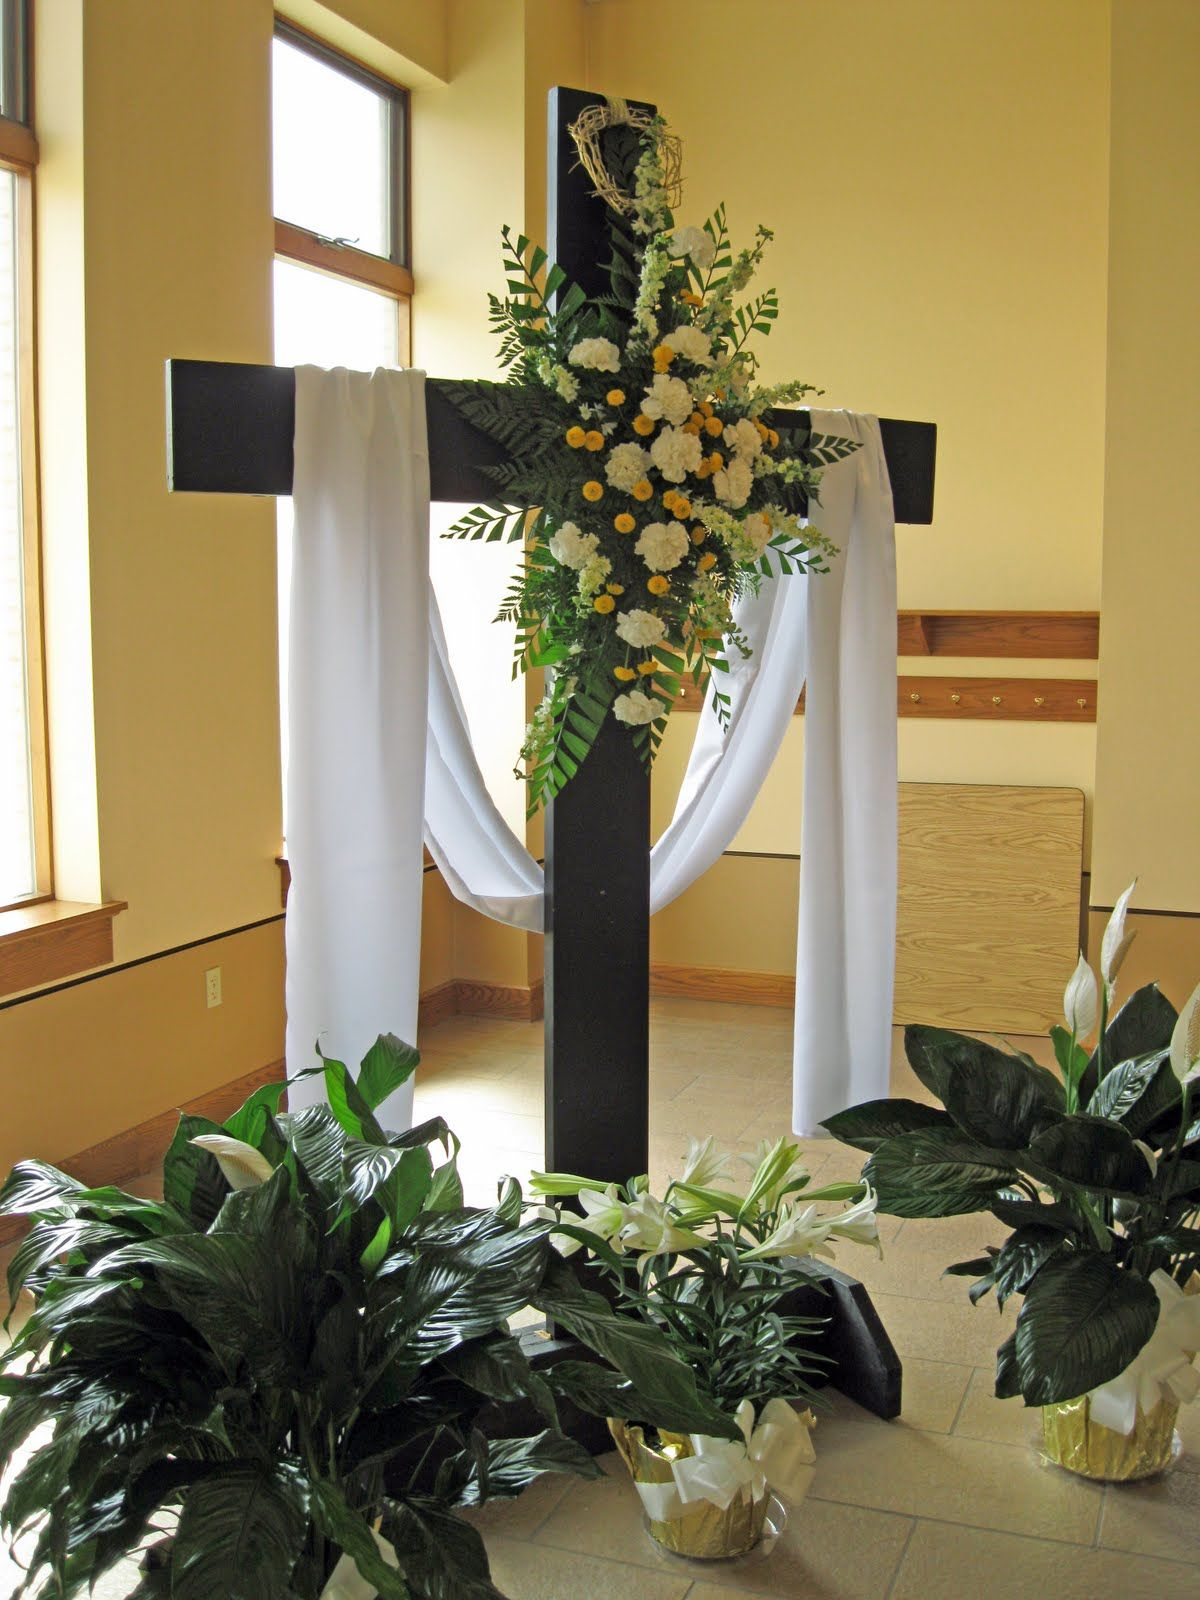 Tulle & Floral church Decoration Ideas for Easter